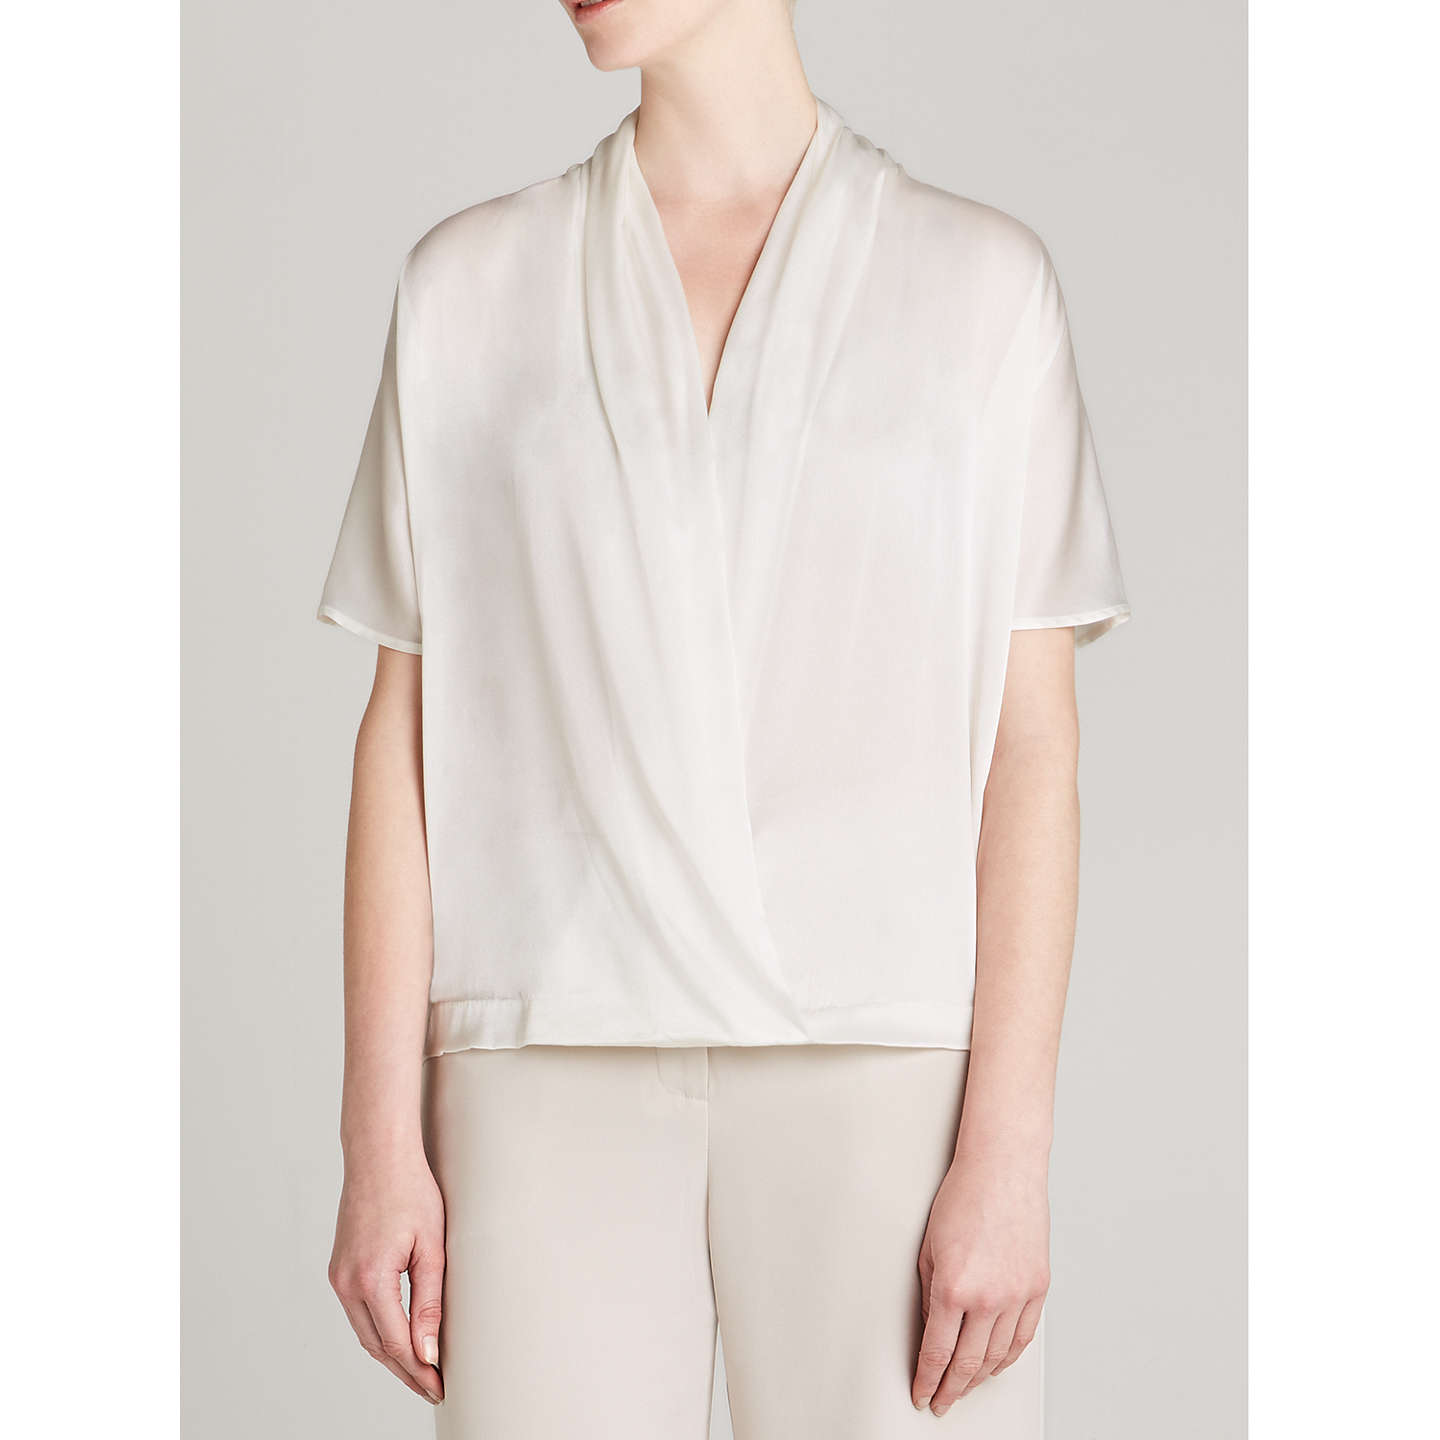 BuyWinser London Silk And Jersey Short Sleeve Wrap Top, Ivory, XS Online at johnlewis.com